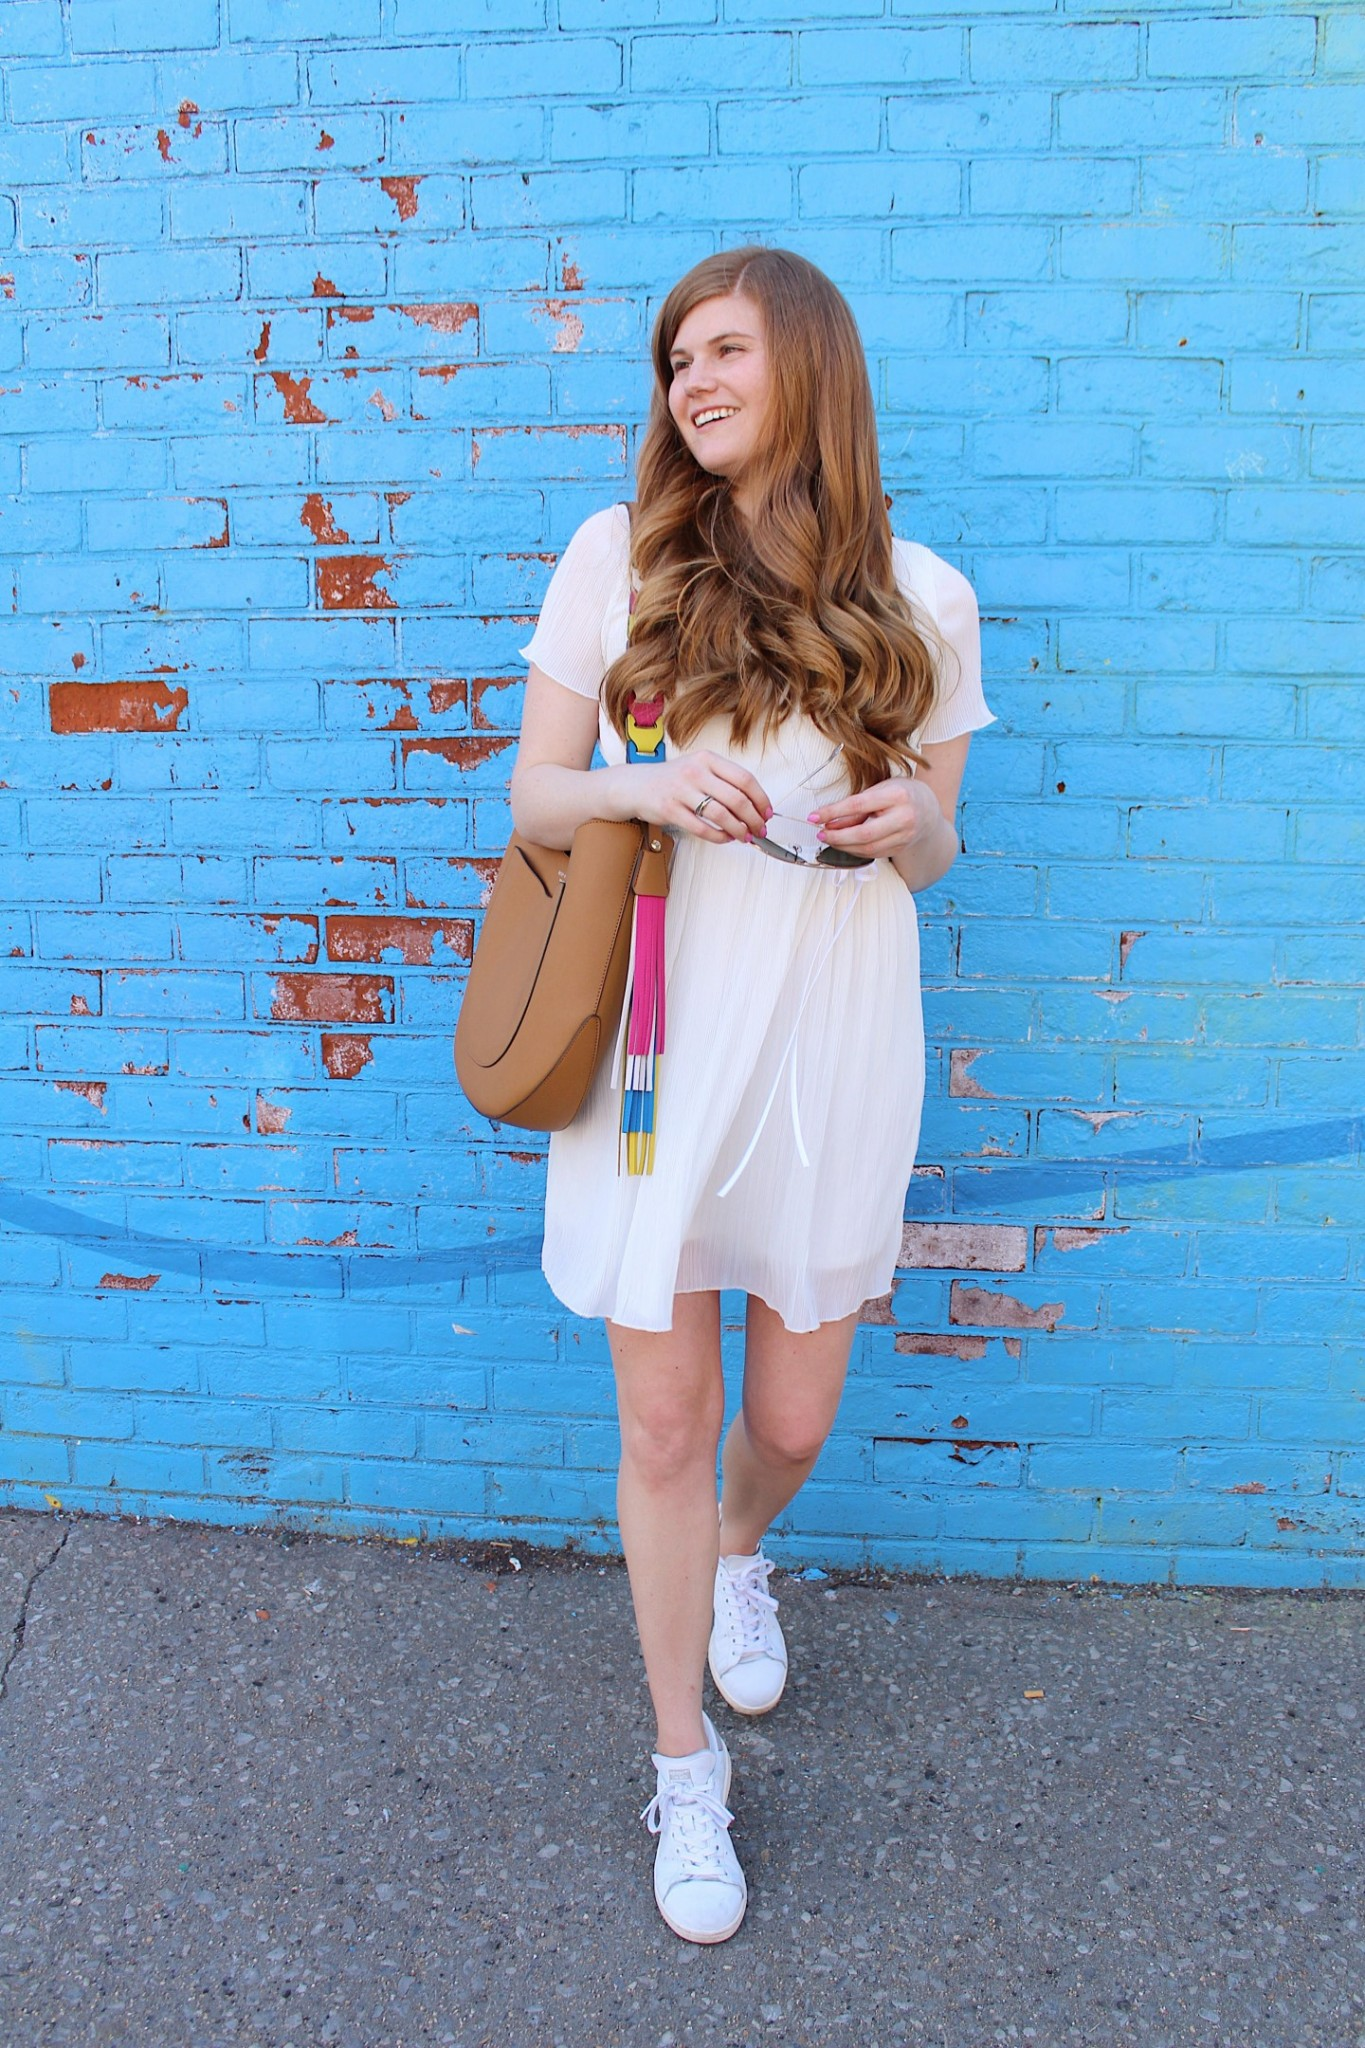 Popular London Life and style blogger Mollie Moore styles a summer outfit at the DUMBO Rainbow Wall